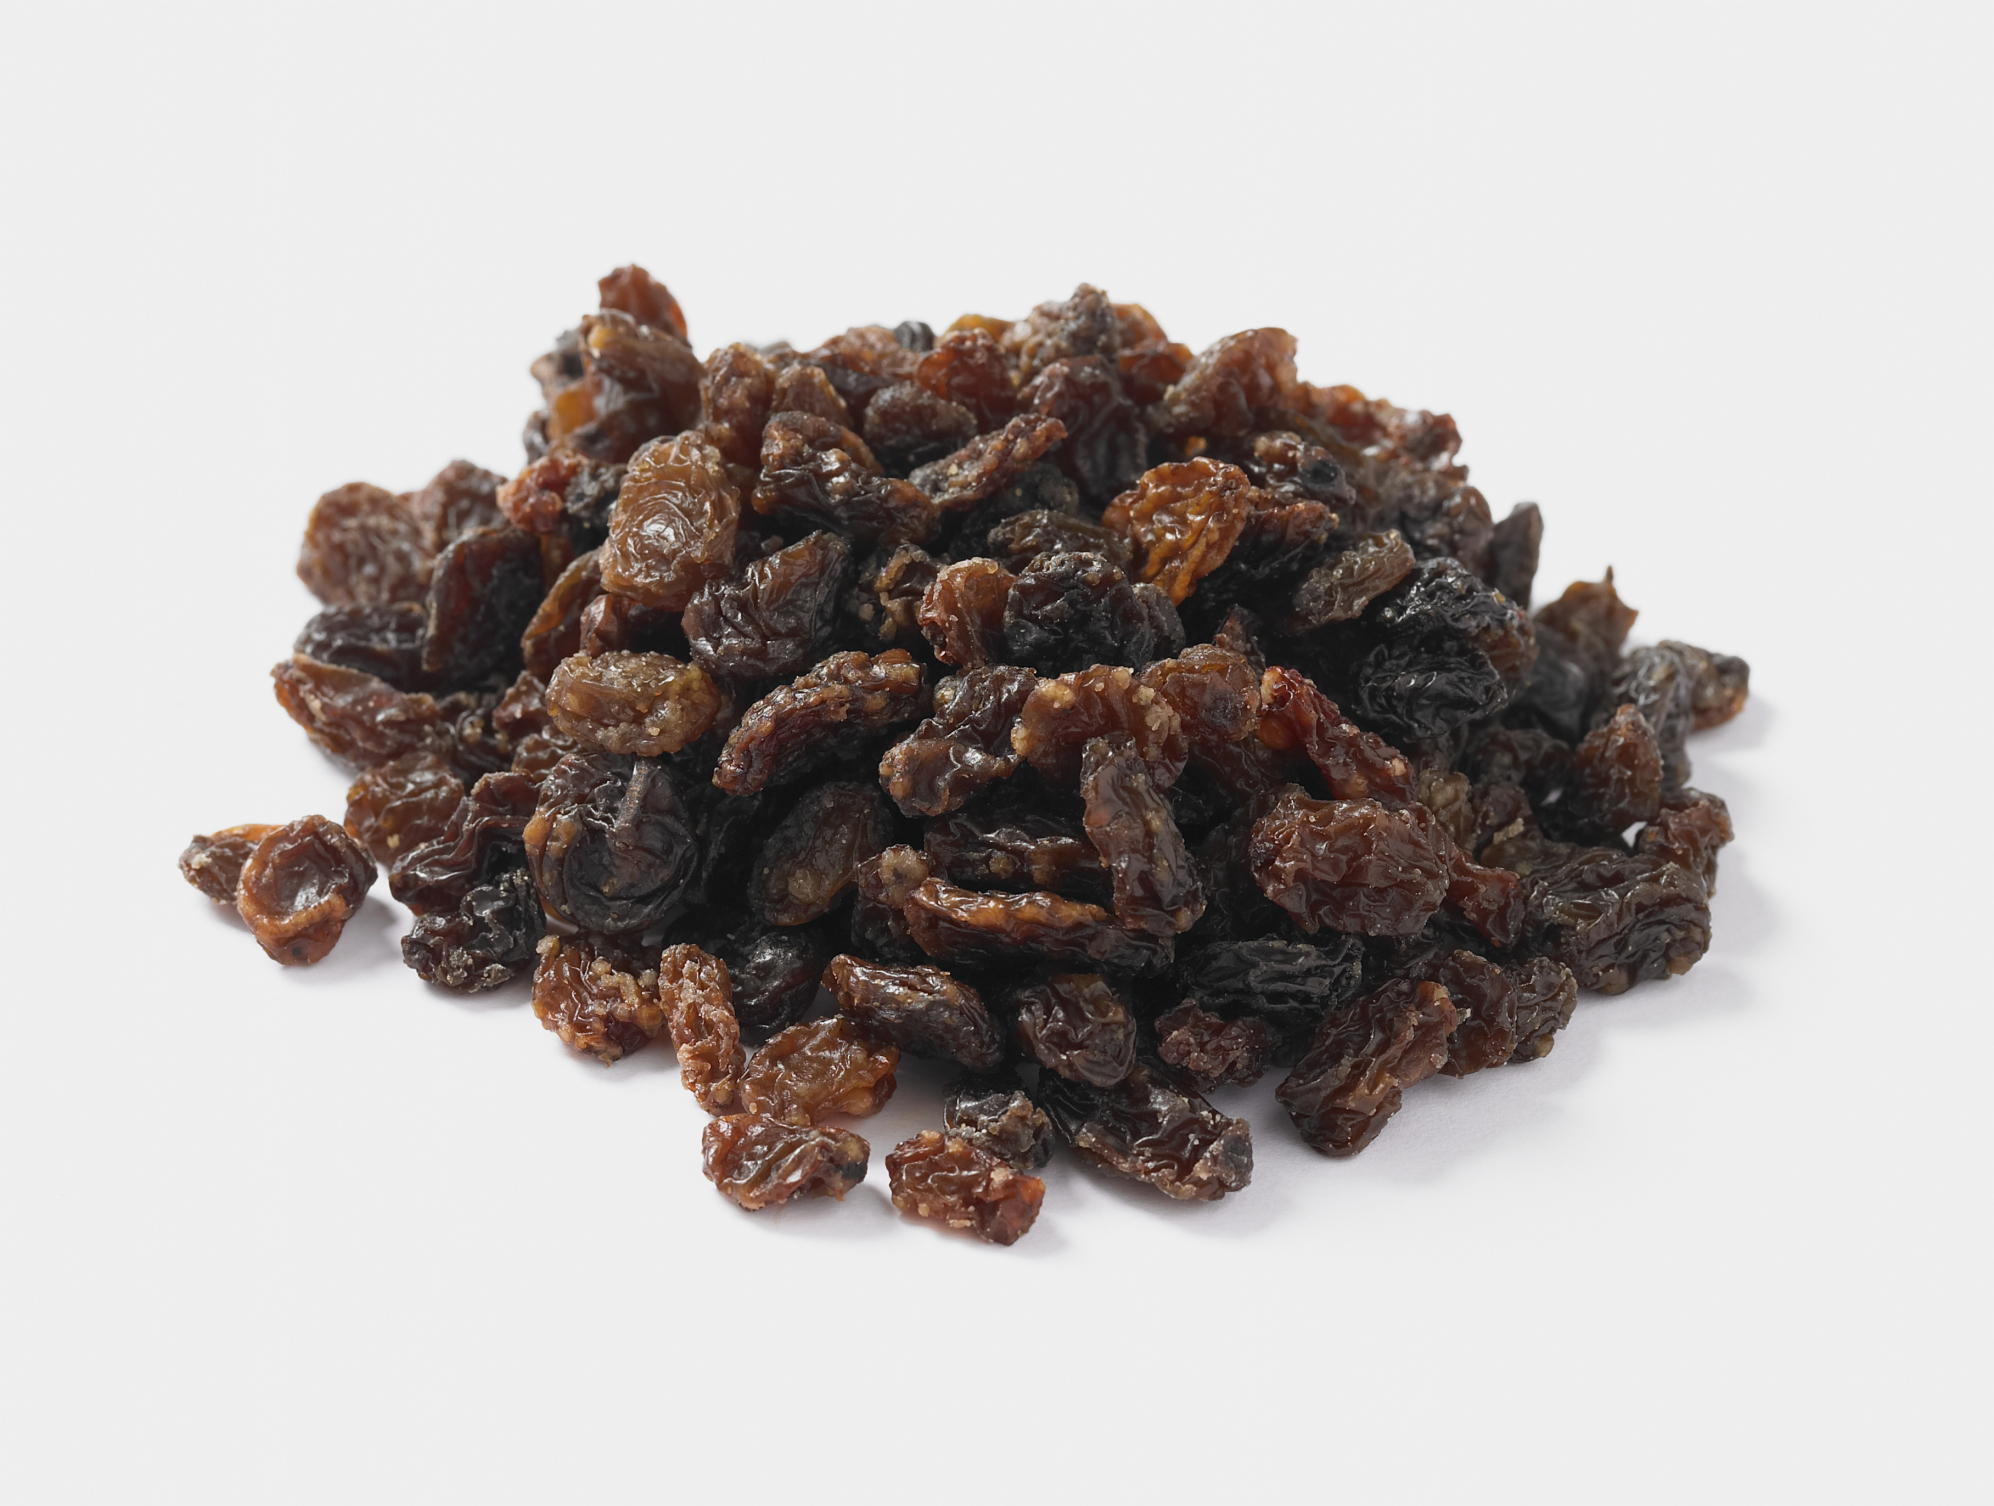 How many calories in raisins 90